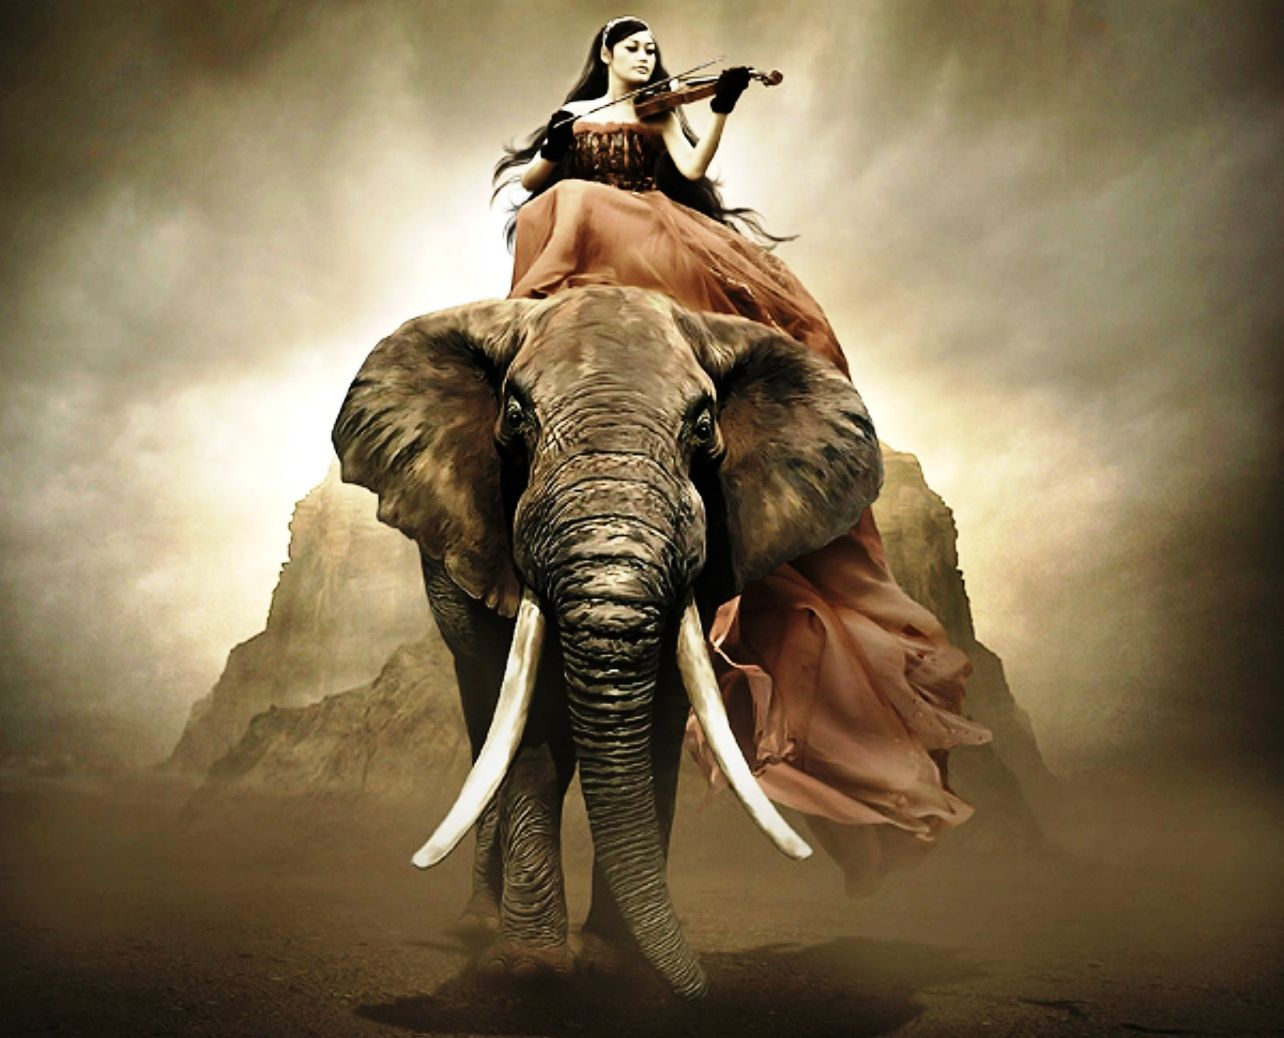 elephant and violonist nature music violin woman girl